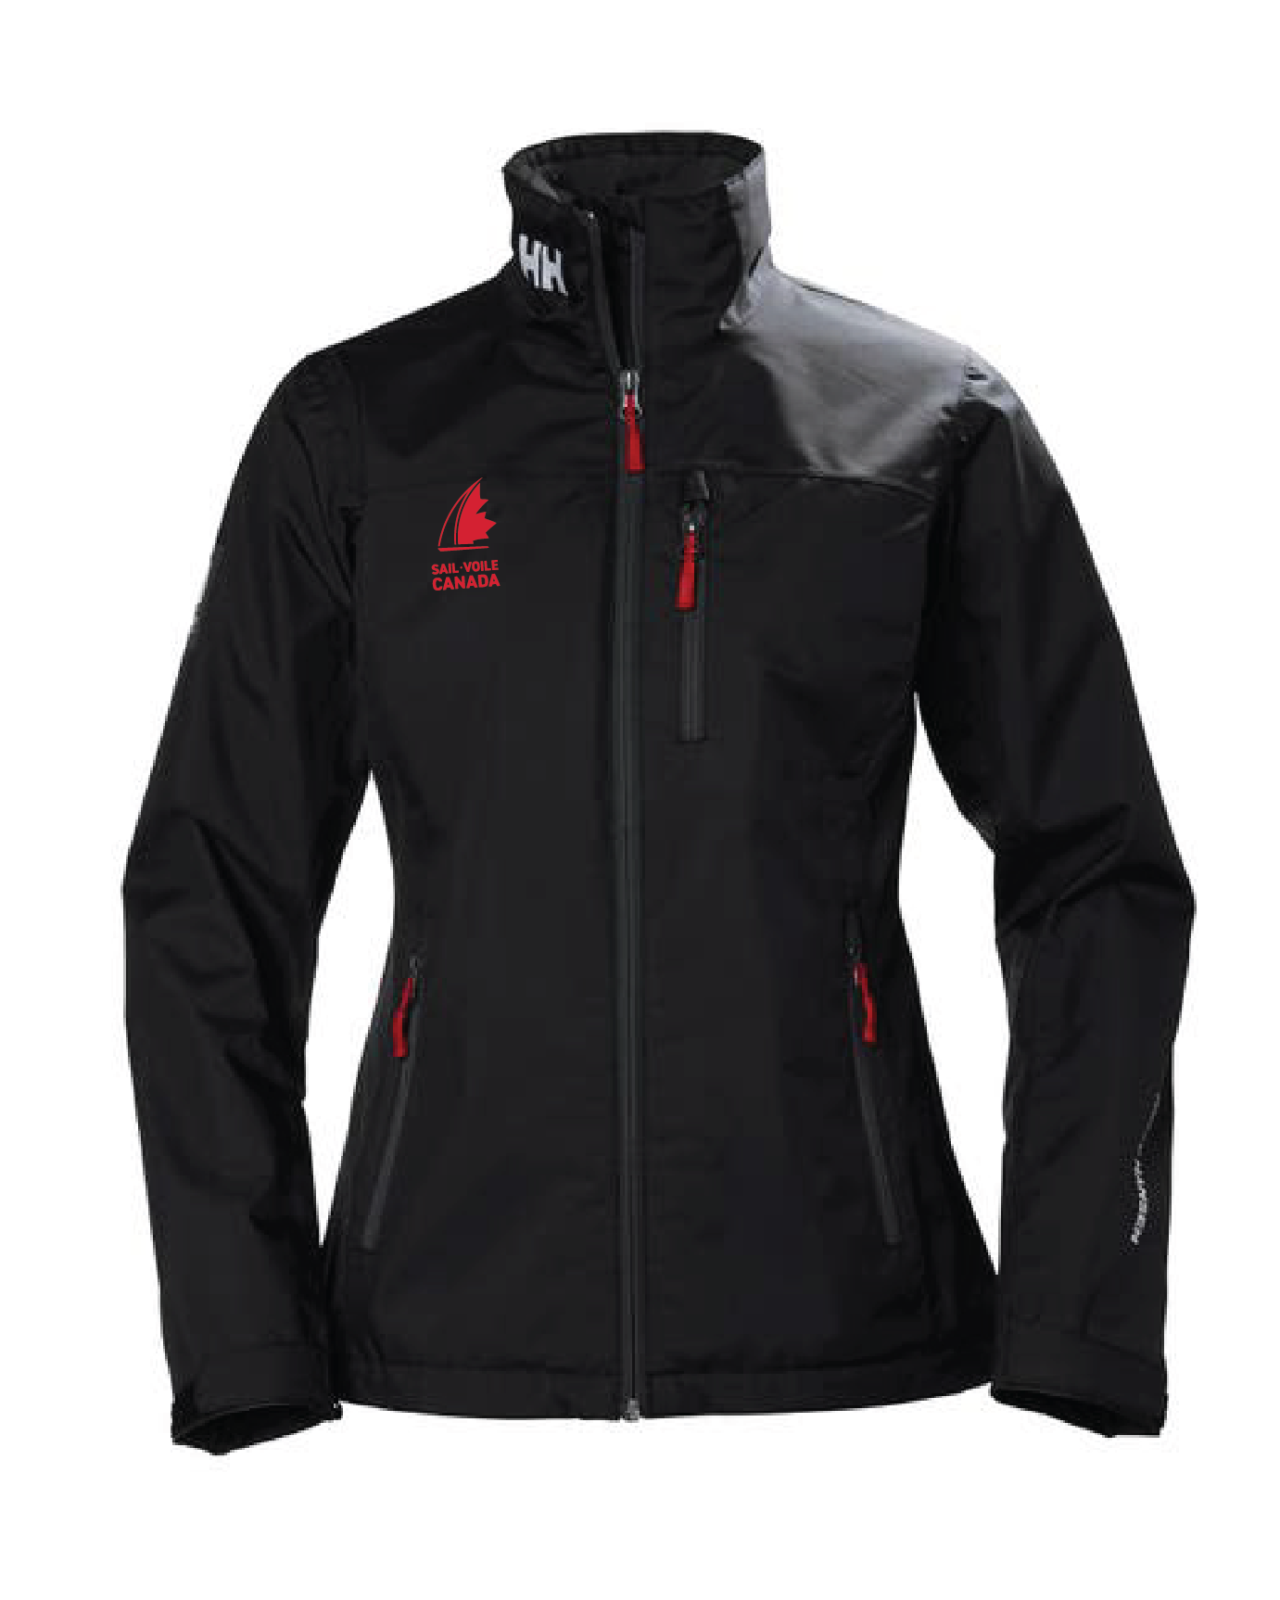 Sail Canada Jacket by Helly Hansen - Women's